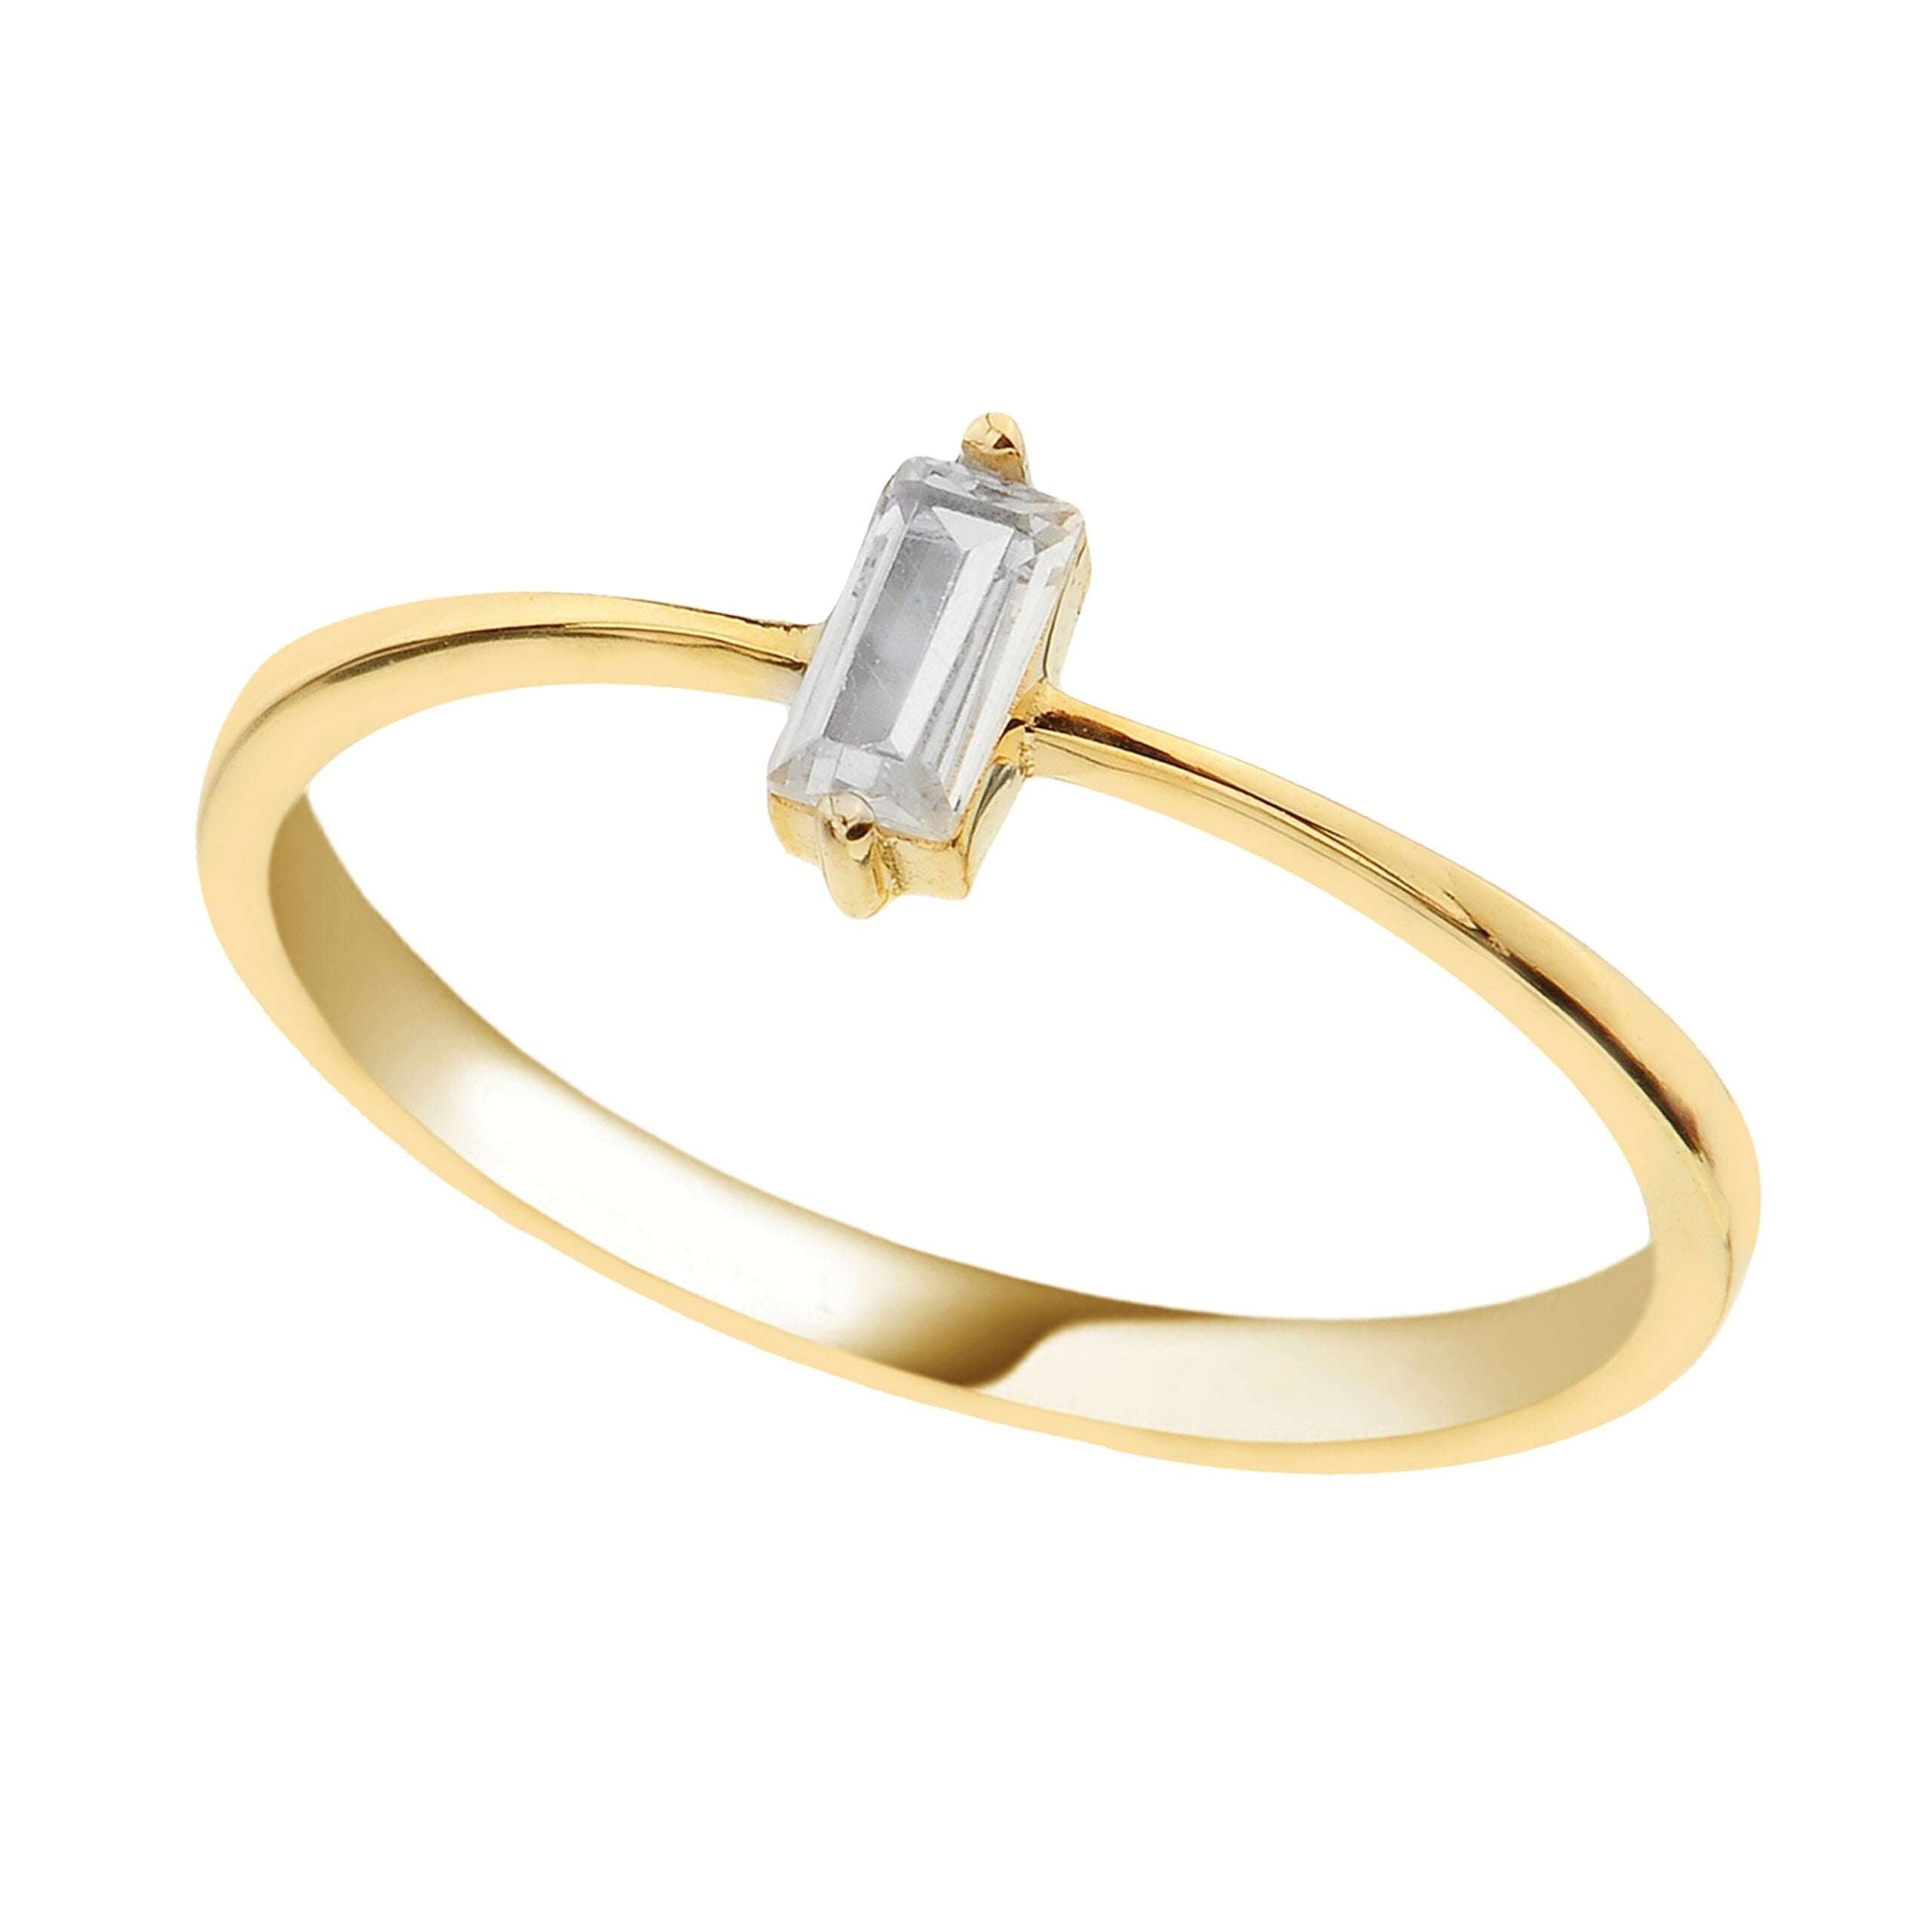 14K Real Solid Gold Baguette Ring for Women | CZ Ring handmade jewelry solitaire cubic zirconia birthday gift christmas